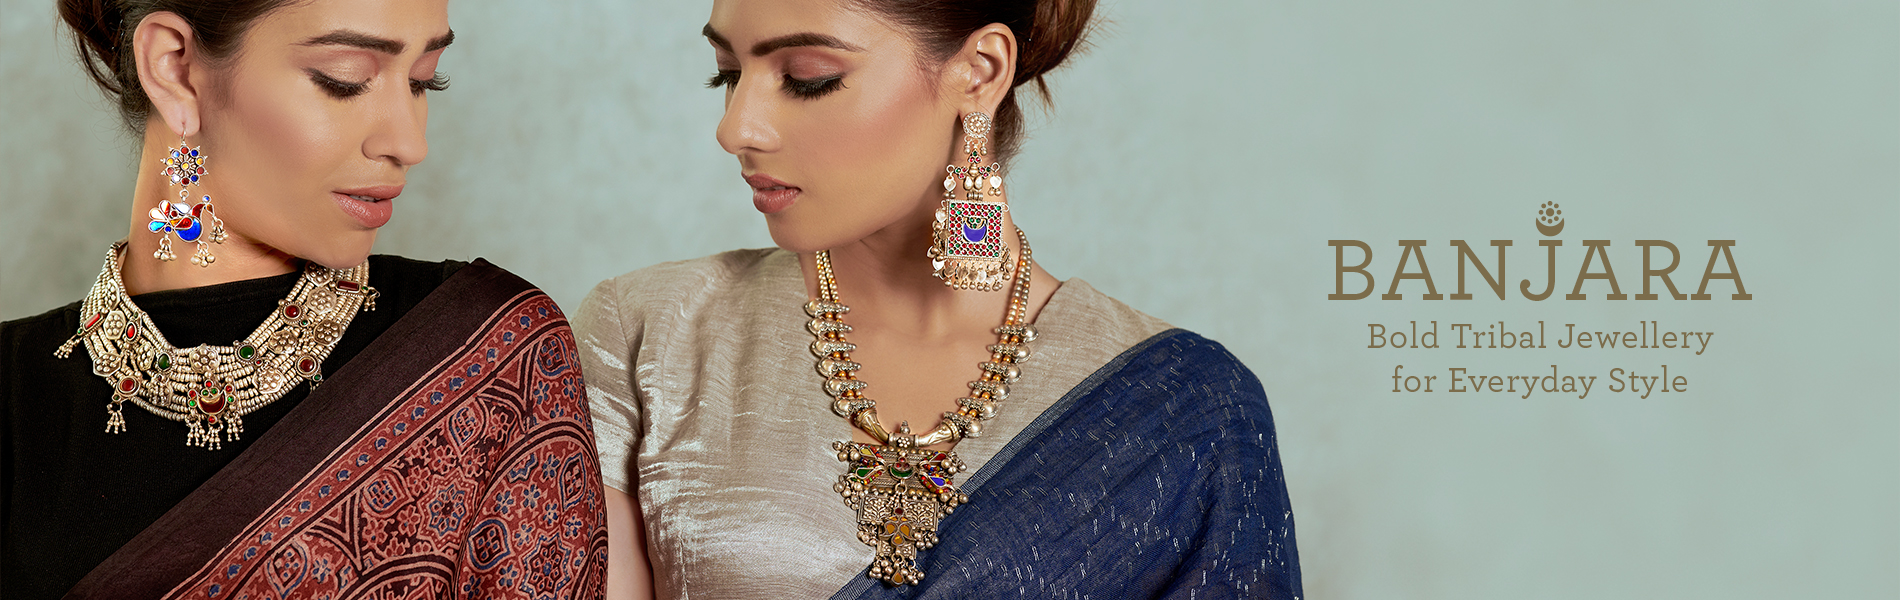 f7a4a2b2433a2 Online Jewellery Store India | Buy handcrafted jewellery ...